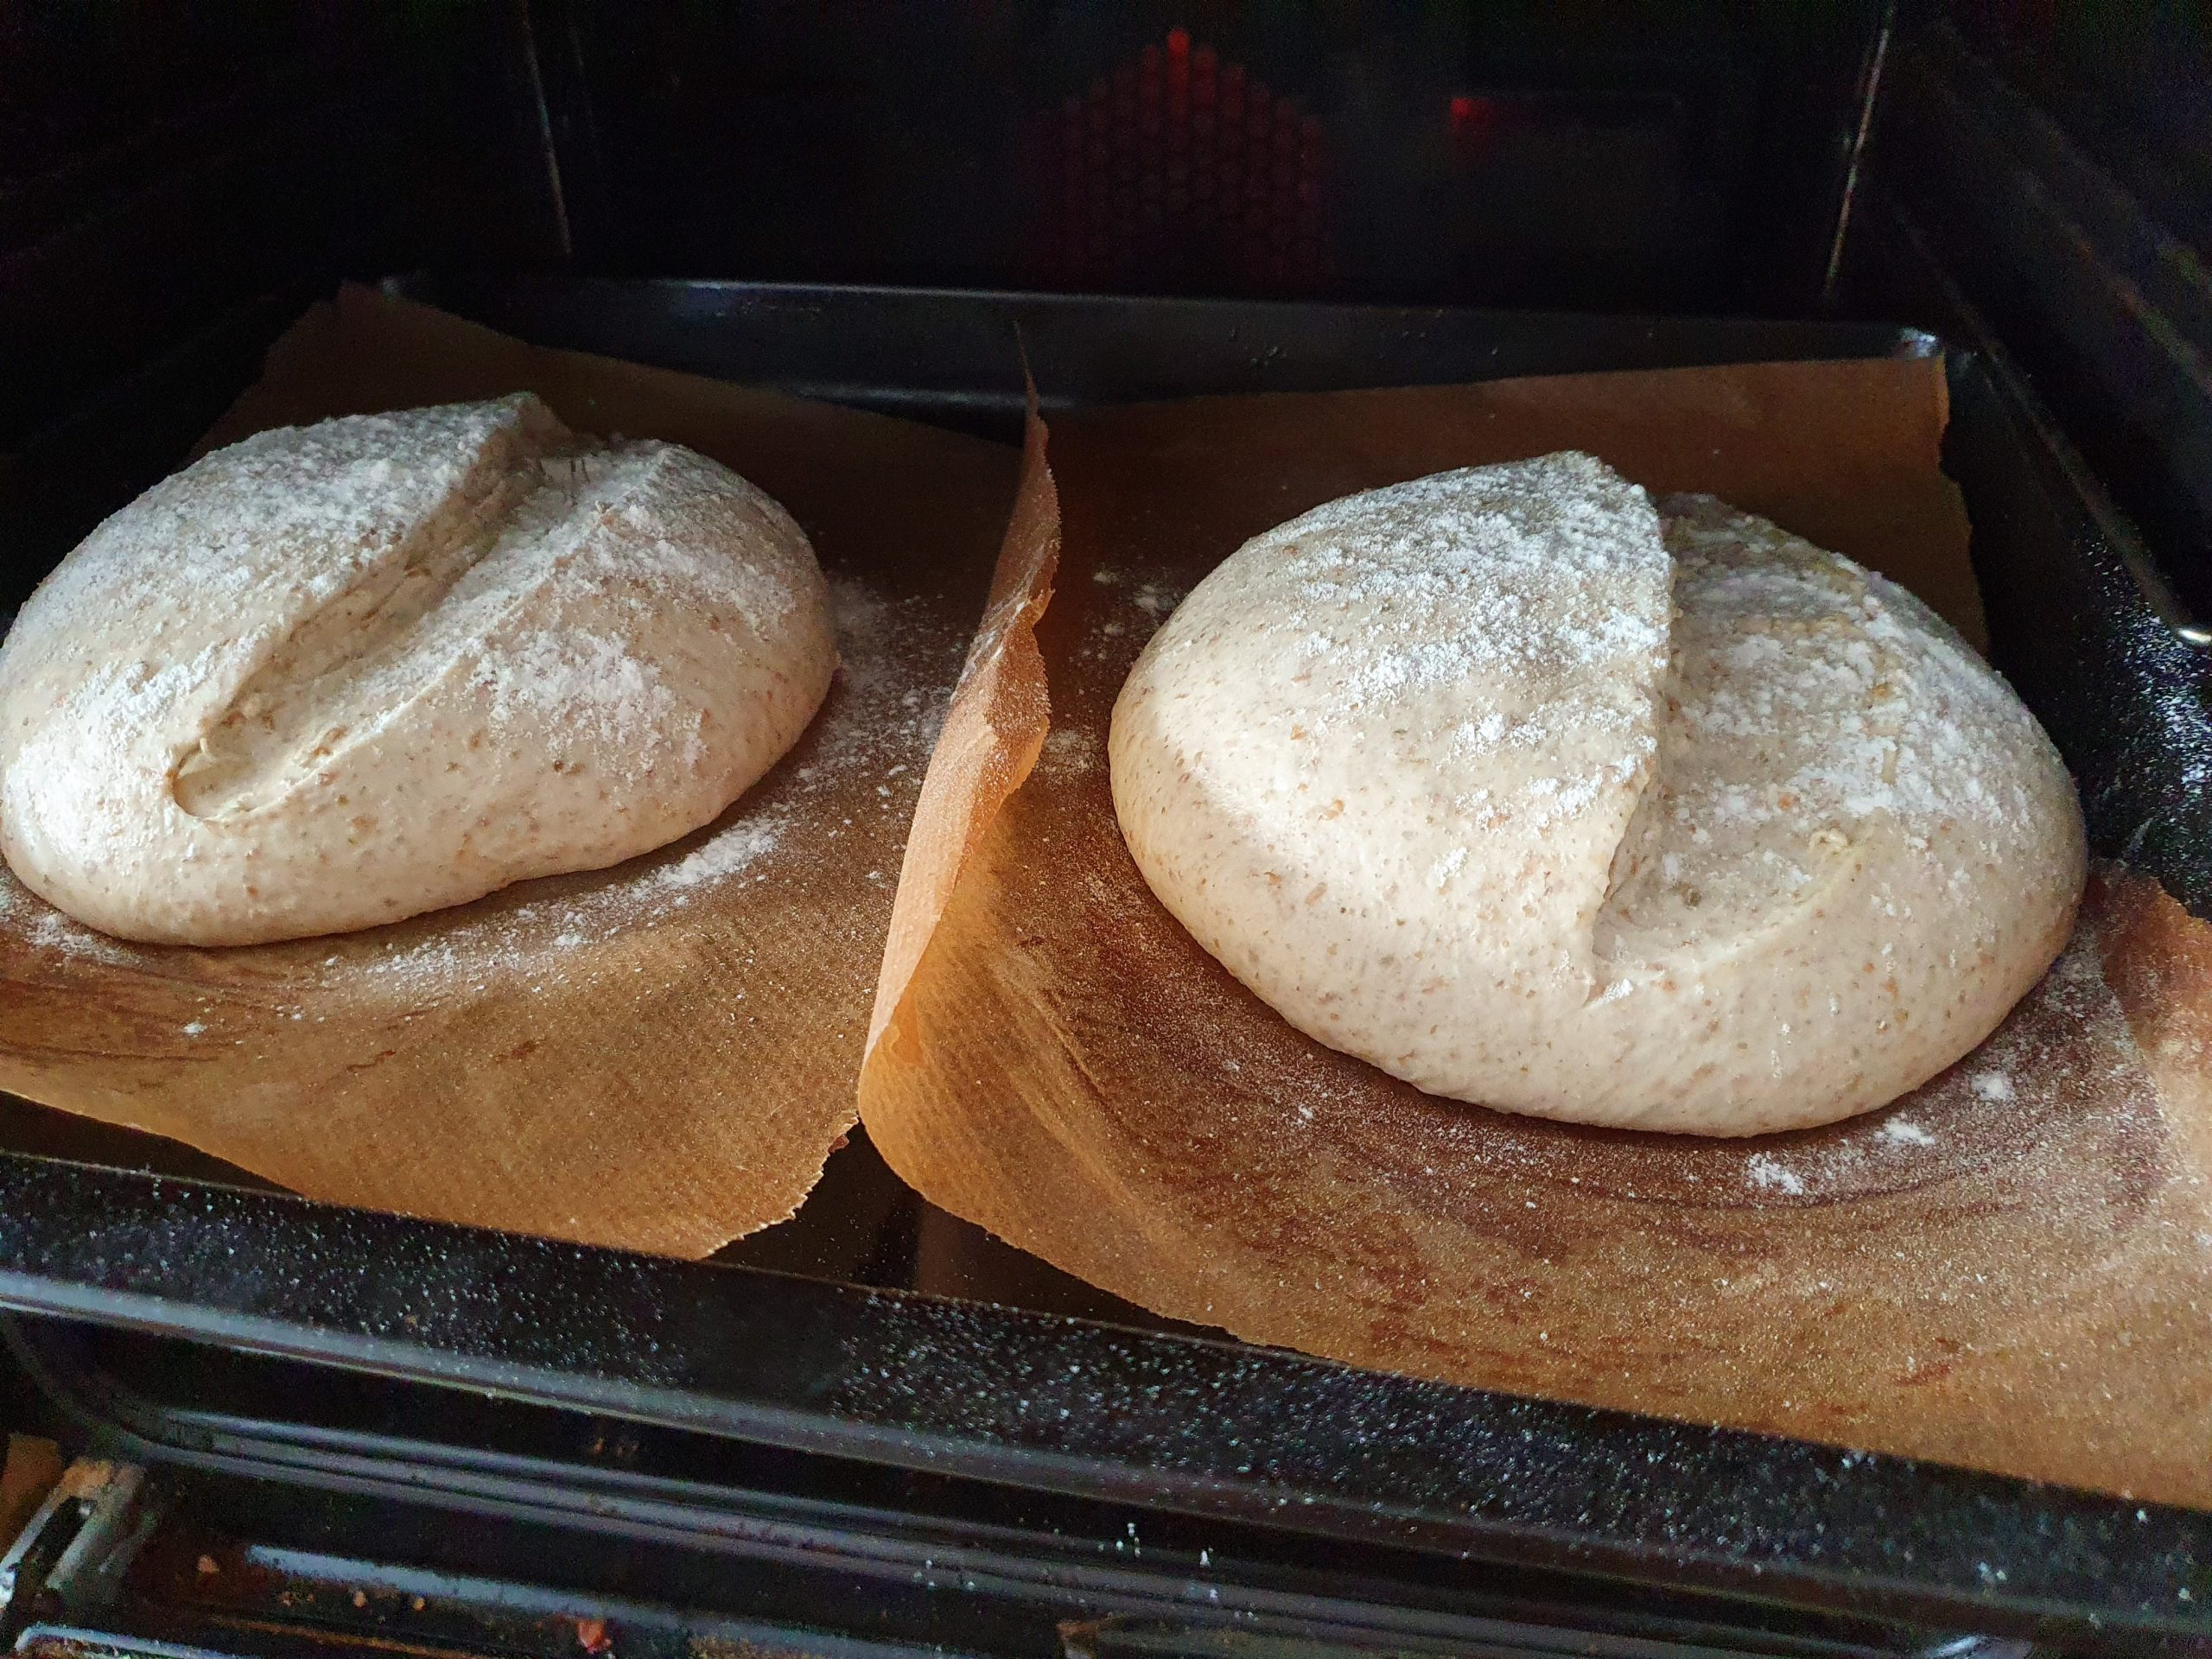 2 Loaves Scored and ready to bake